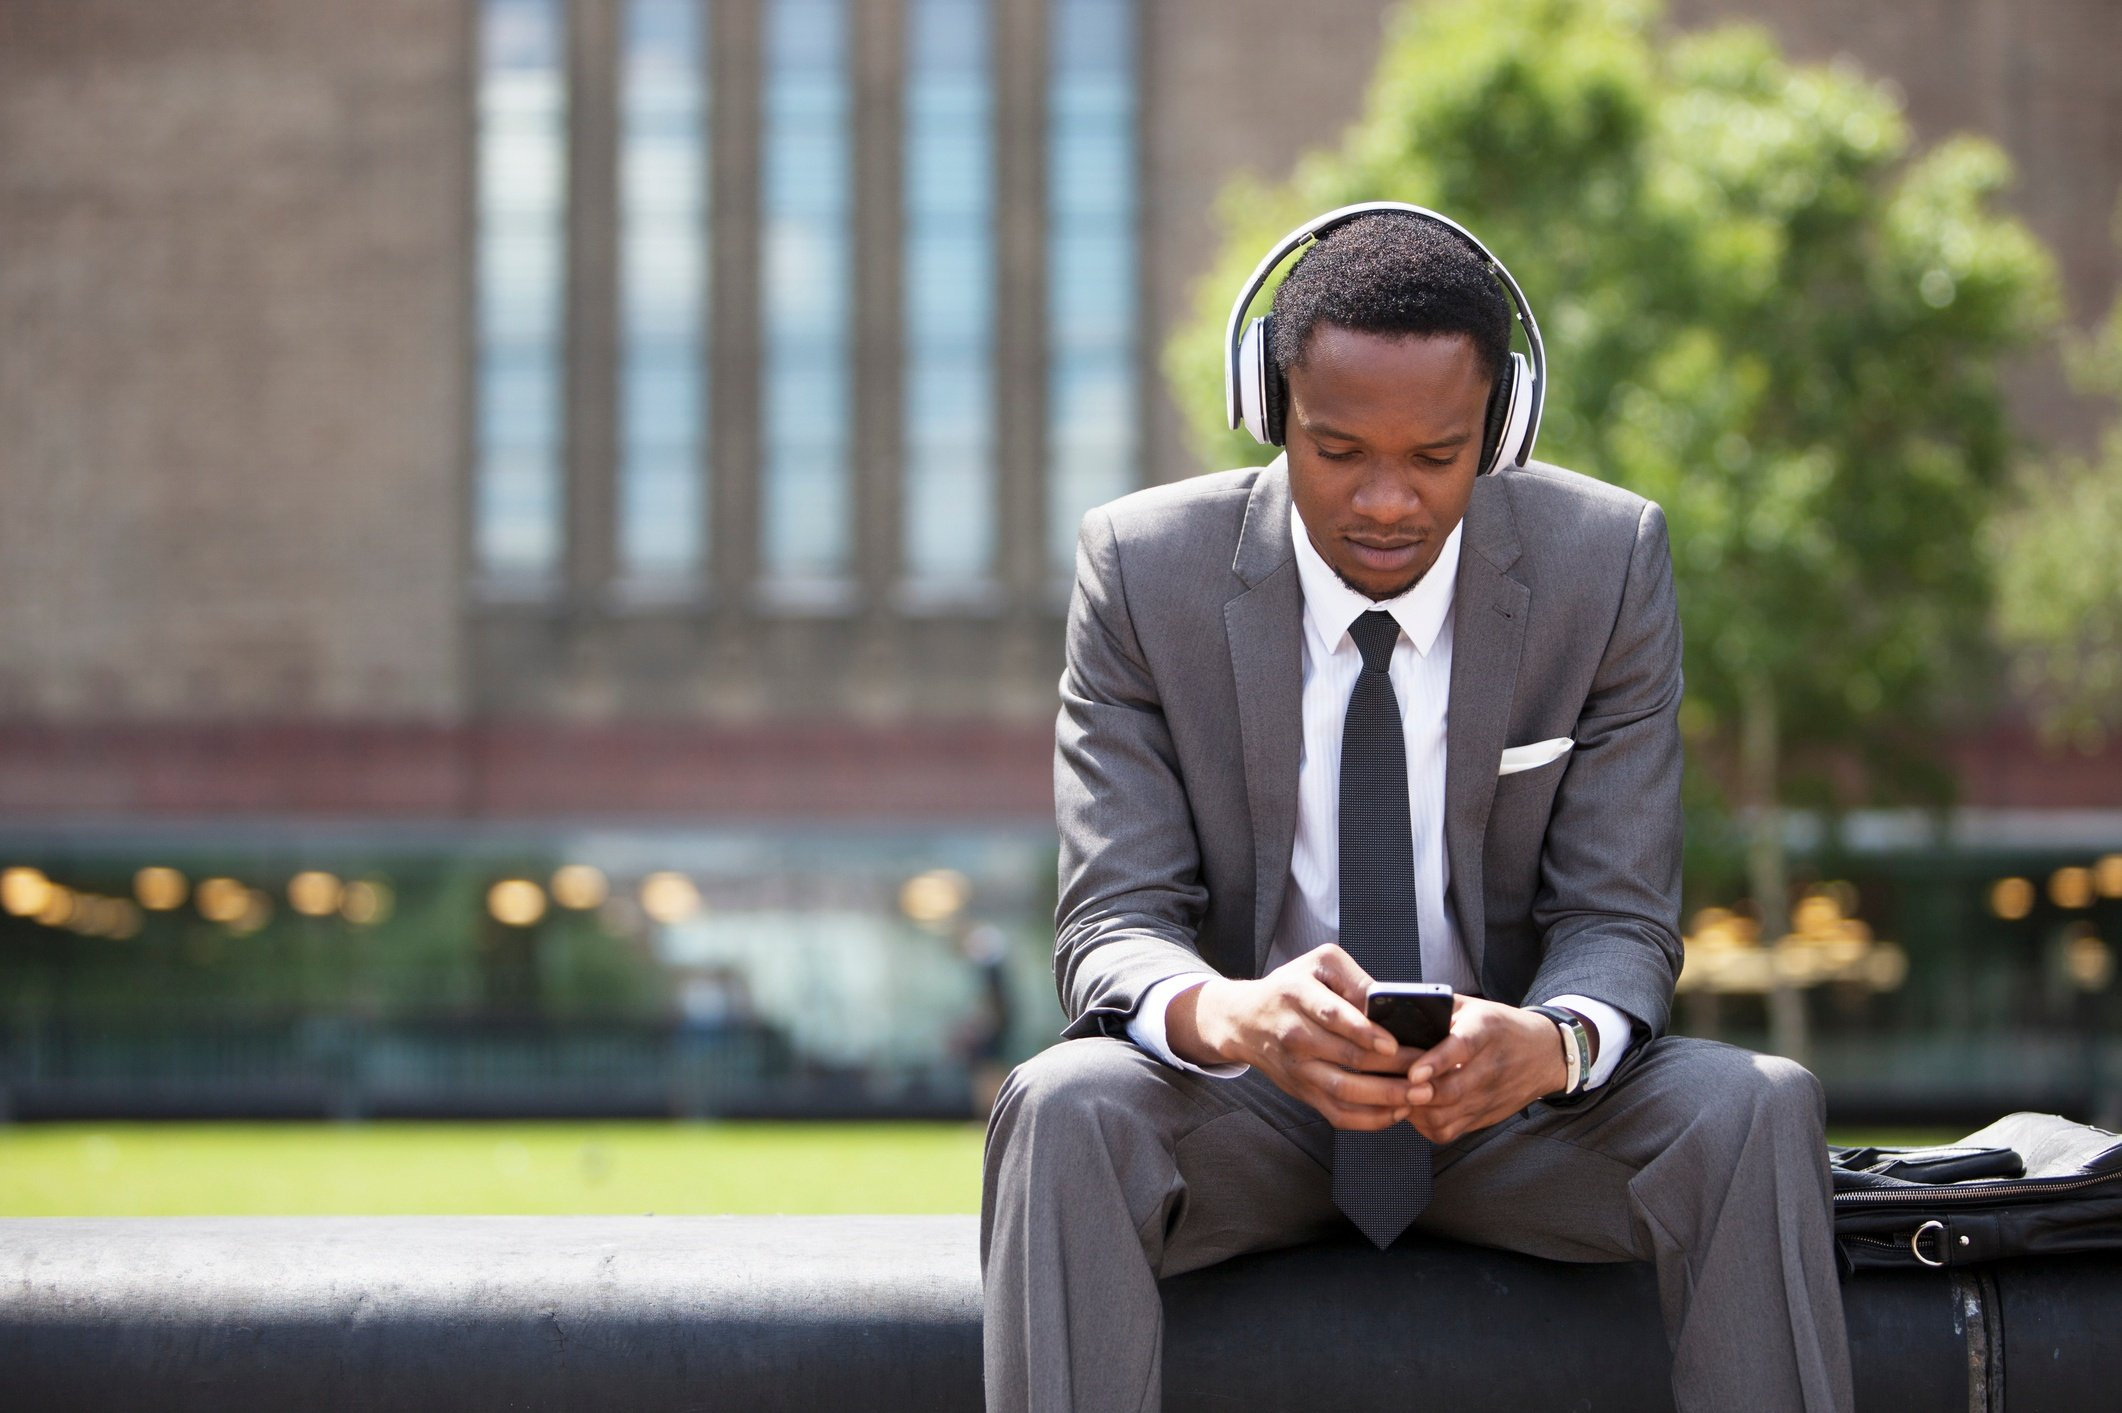 7 Podcasts to Improve Your Money Management Skills